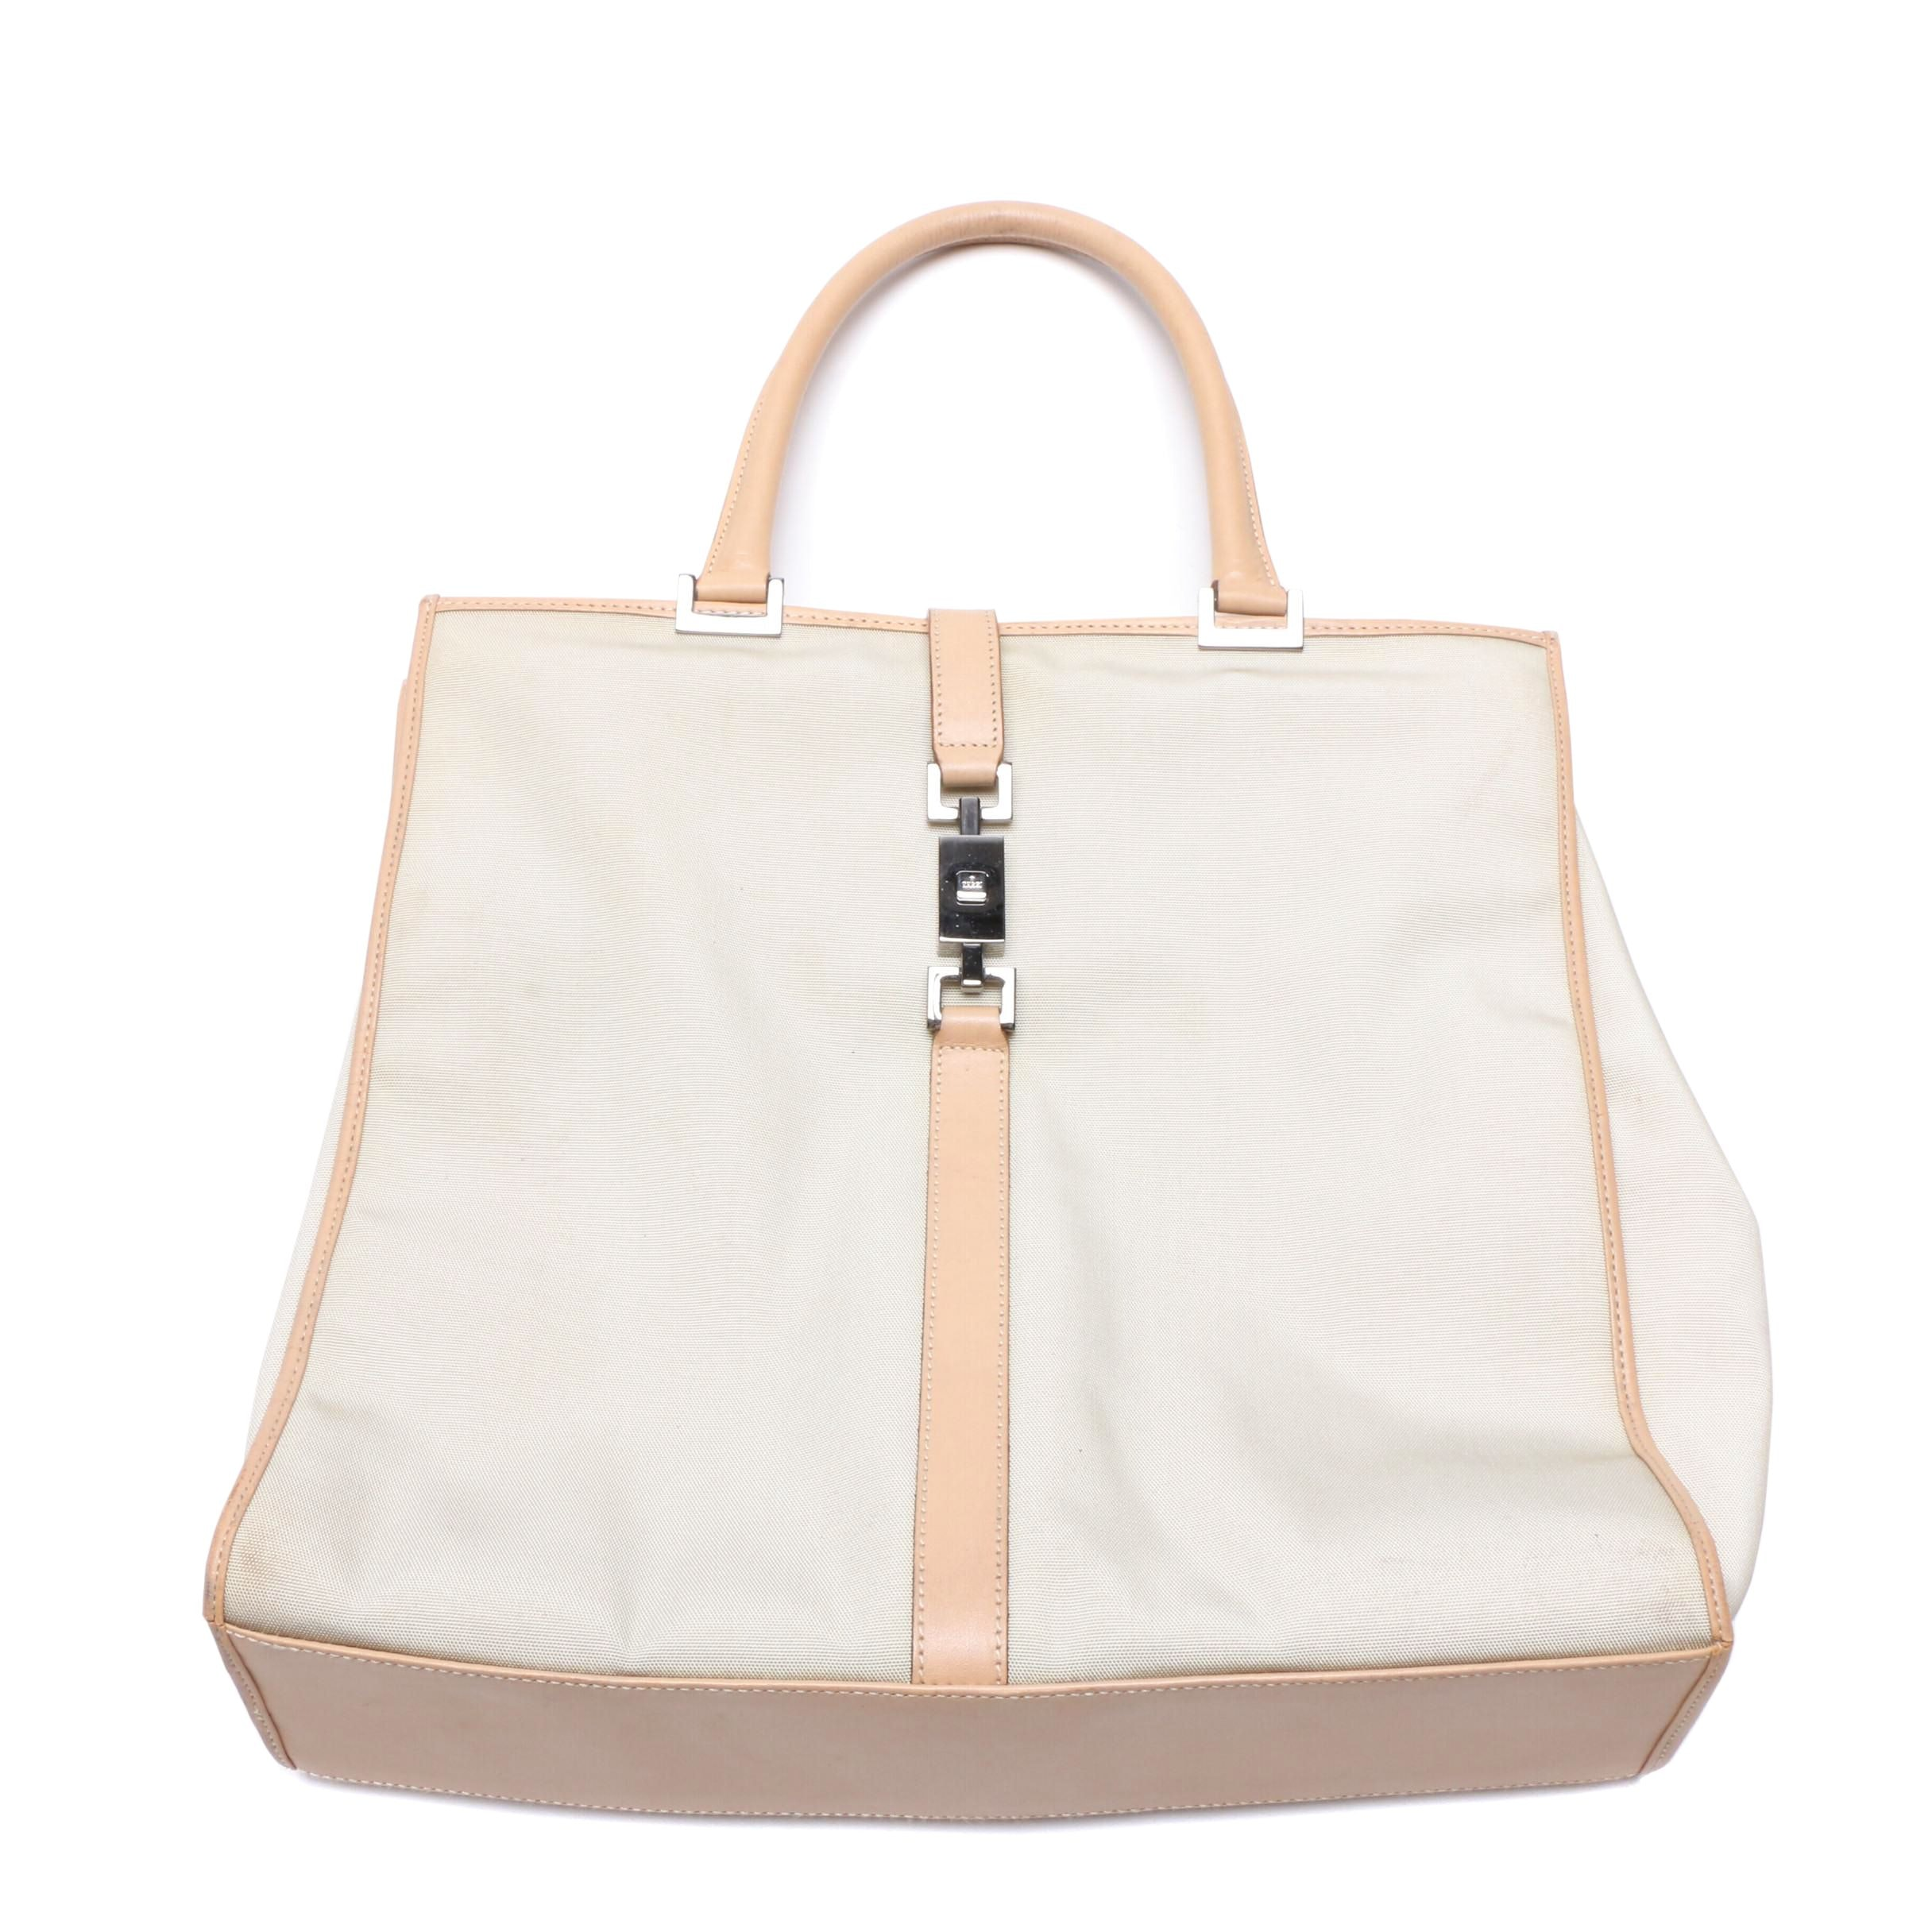 Gucci Beige Nylon and Leather Tote Bag